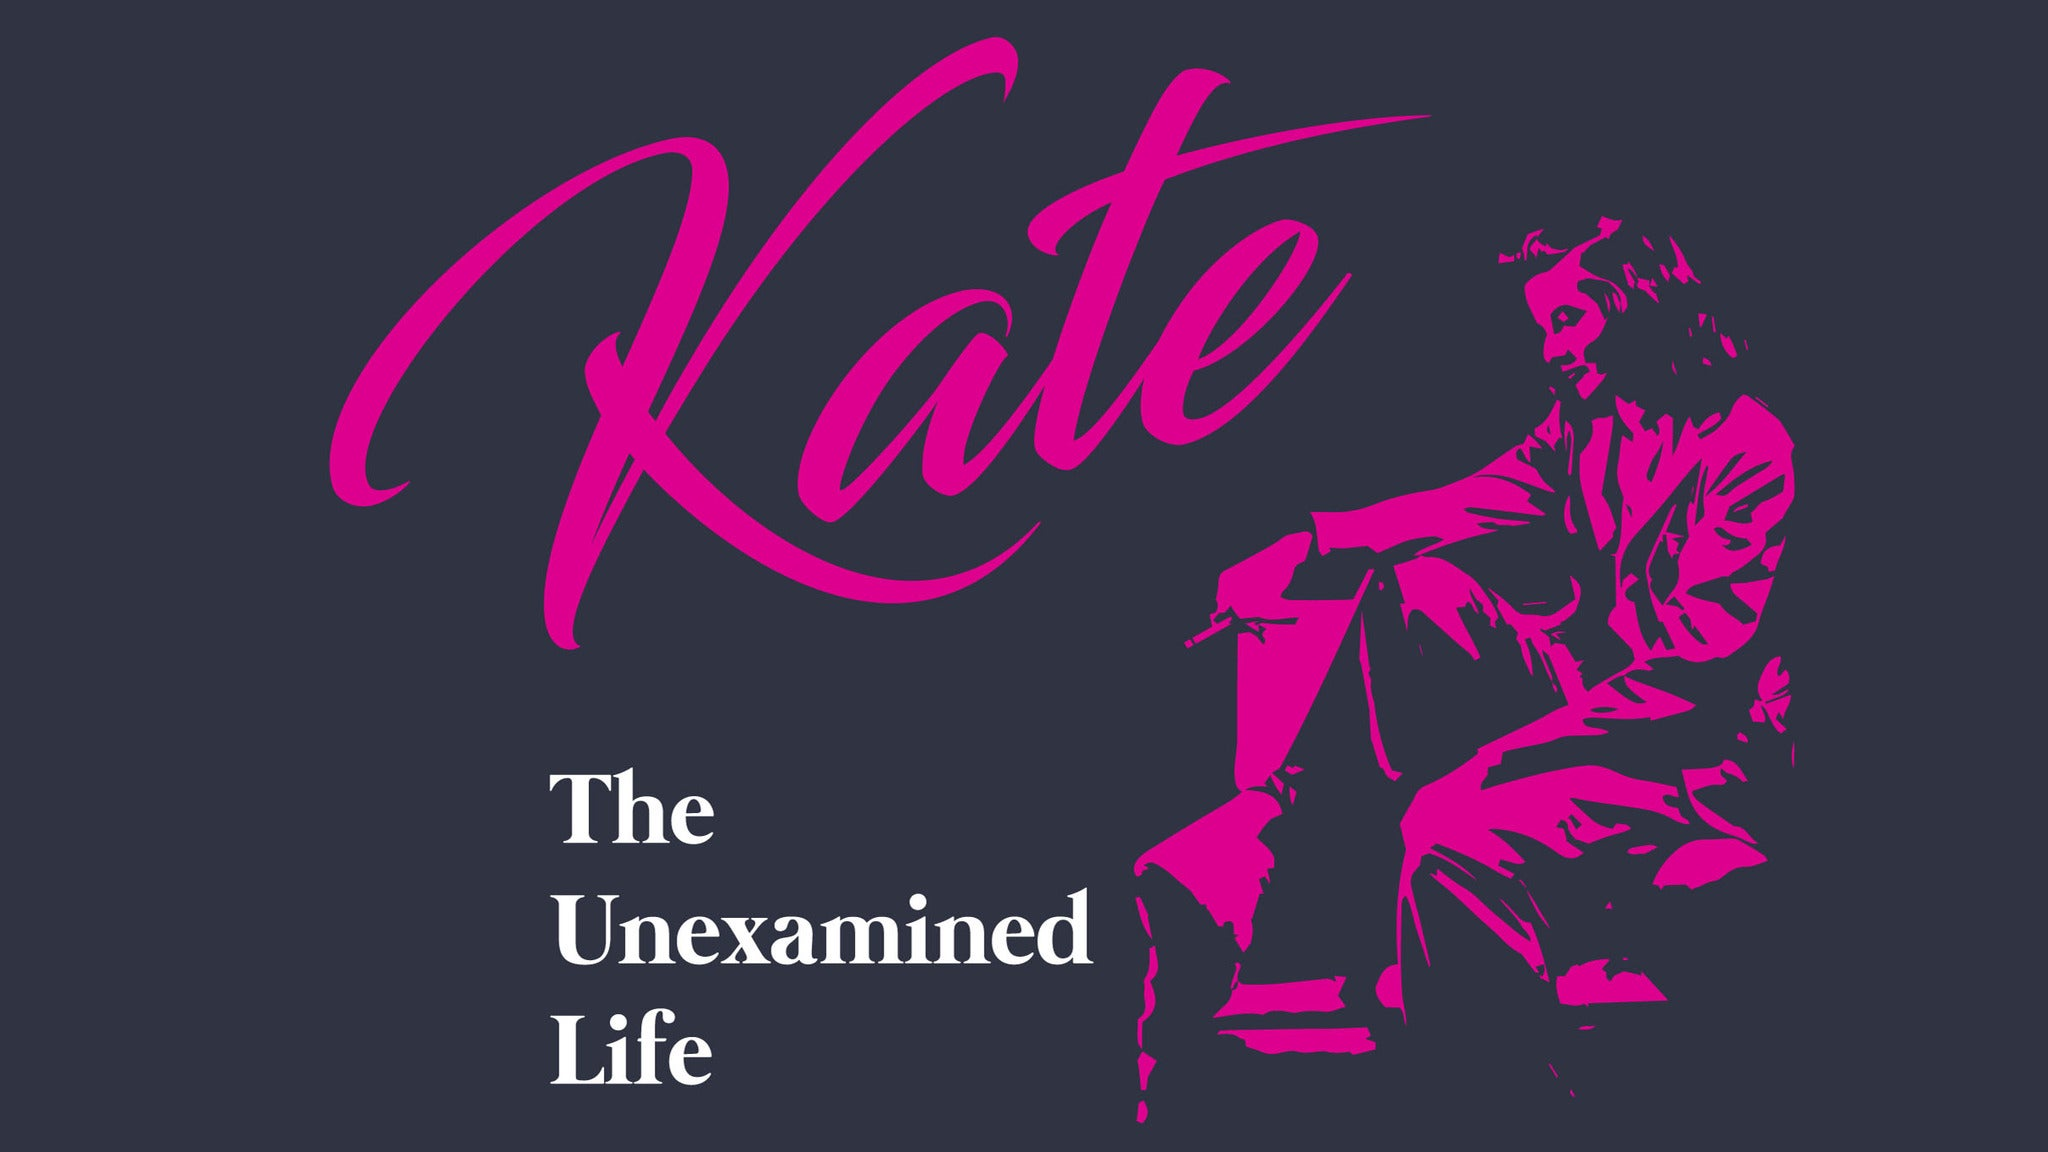 Walnut Street Theatre's Kate The Unexamined Life - Philadelphia, PA 19107